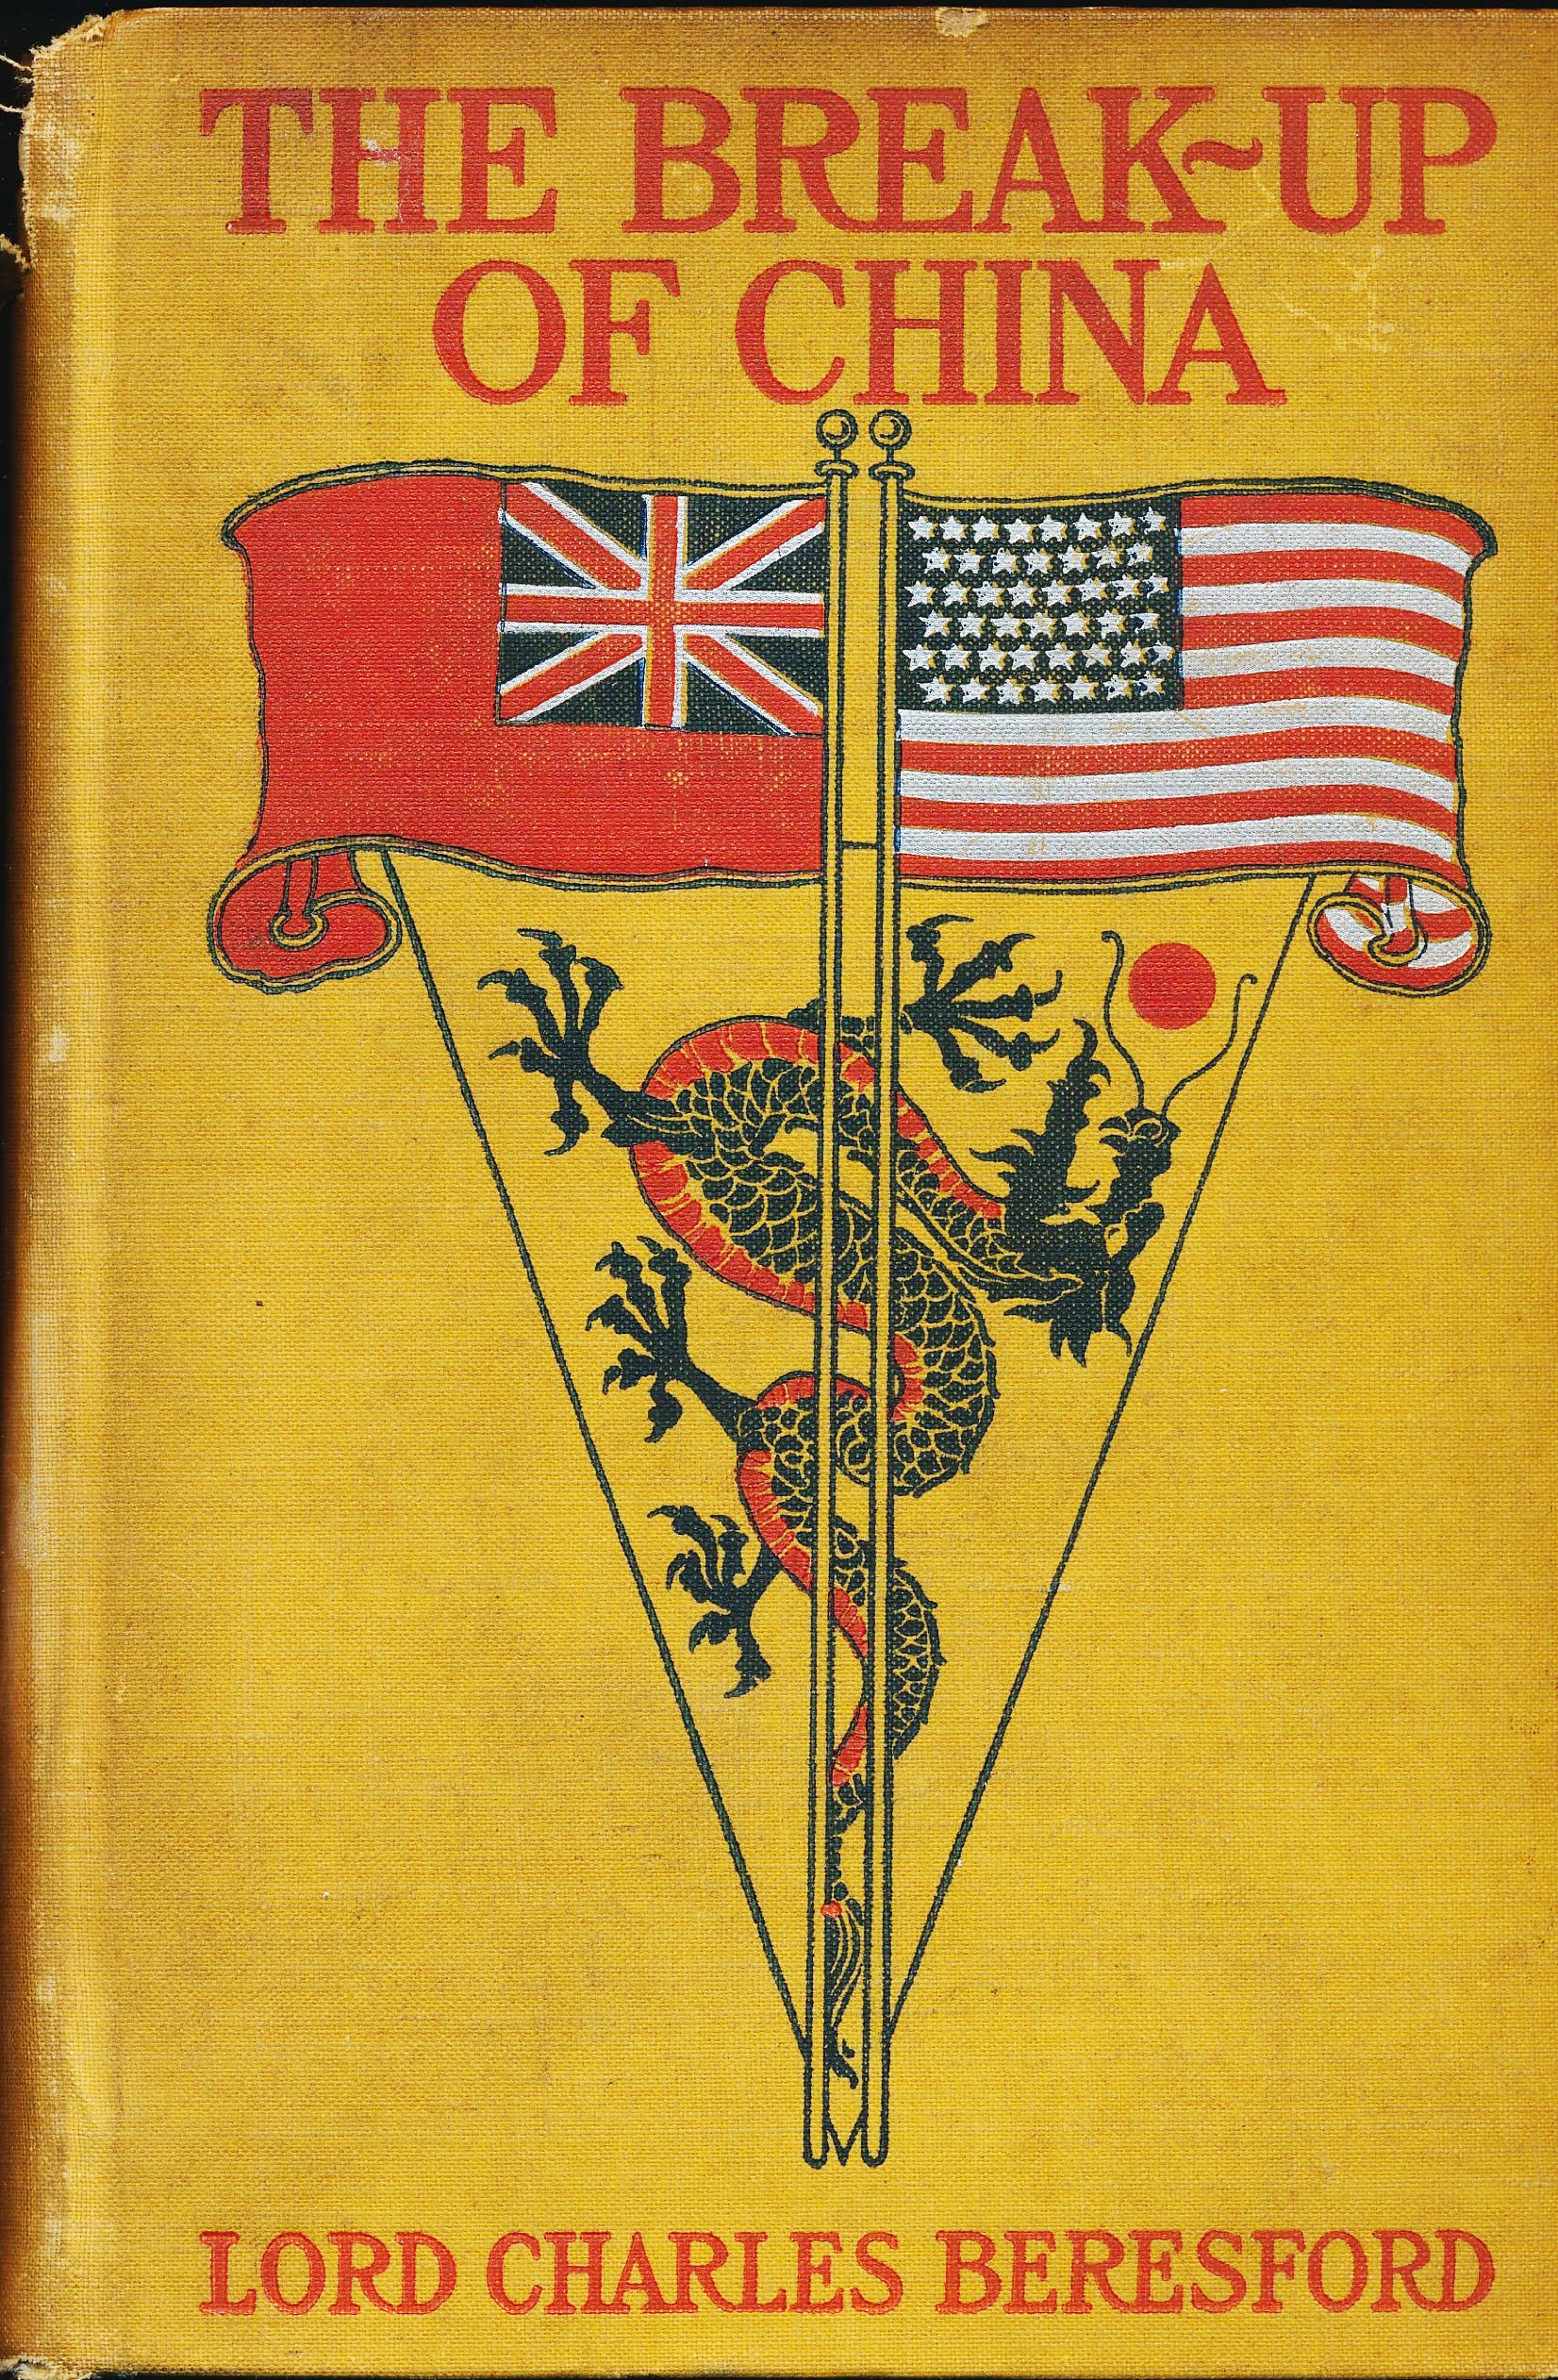 Lord Beresford, The Break-up of China, cover